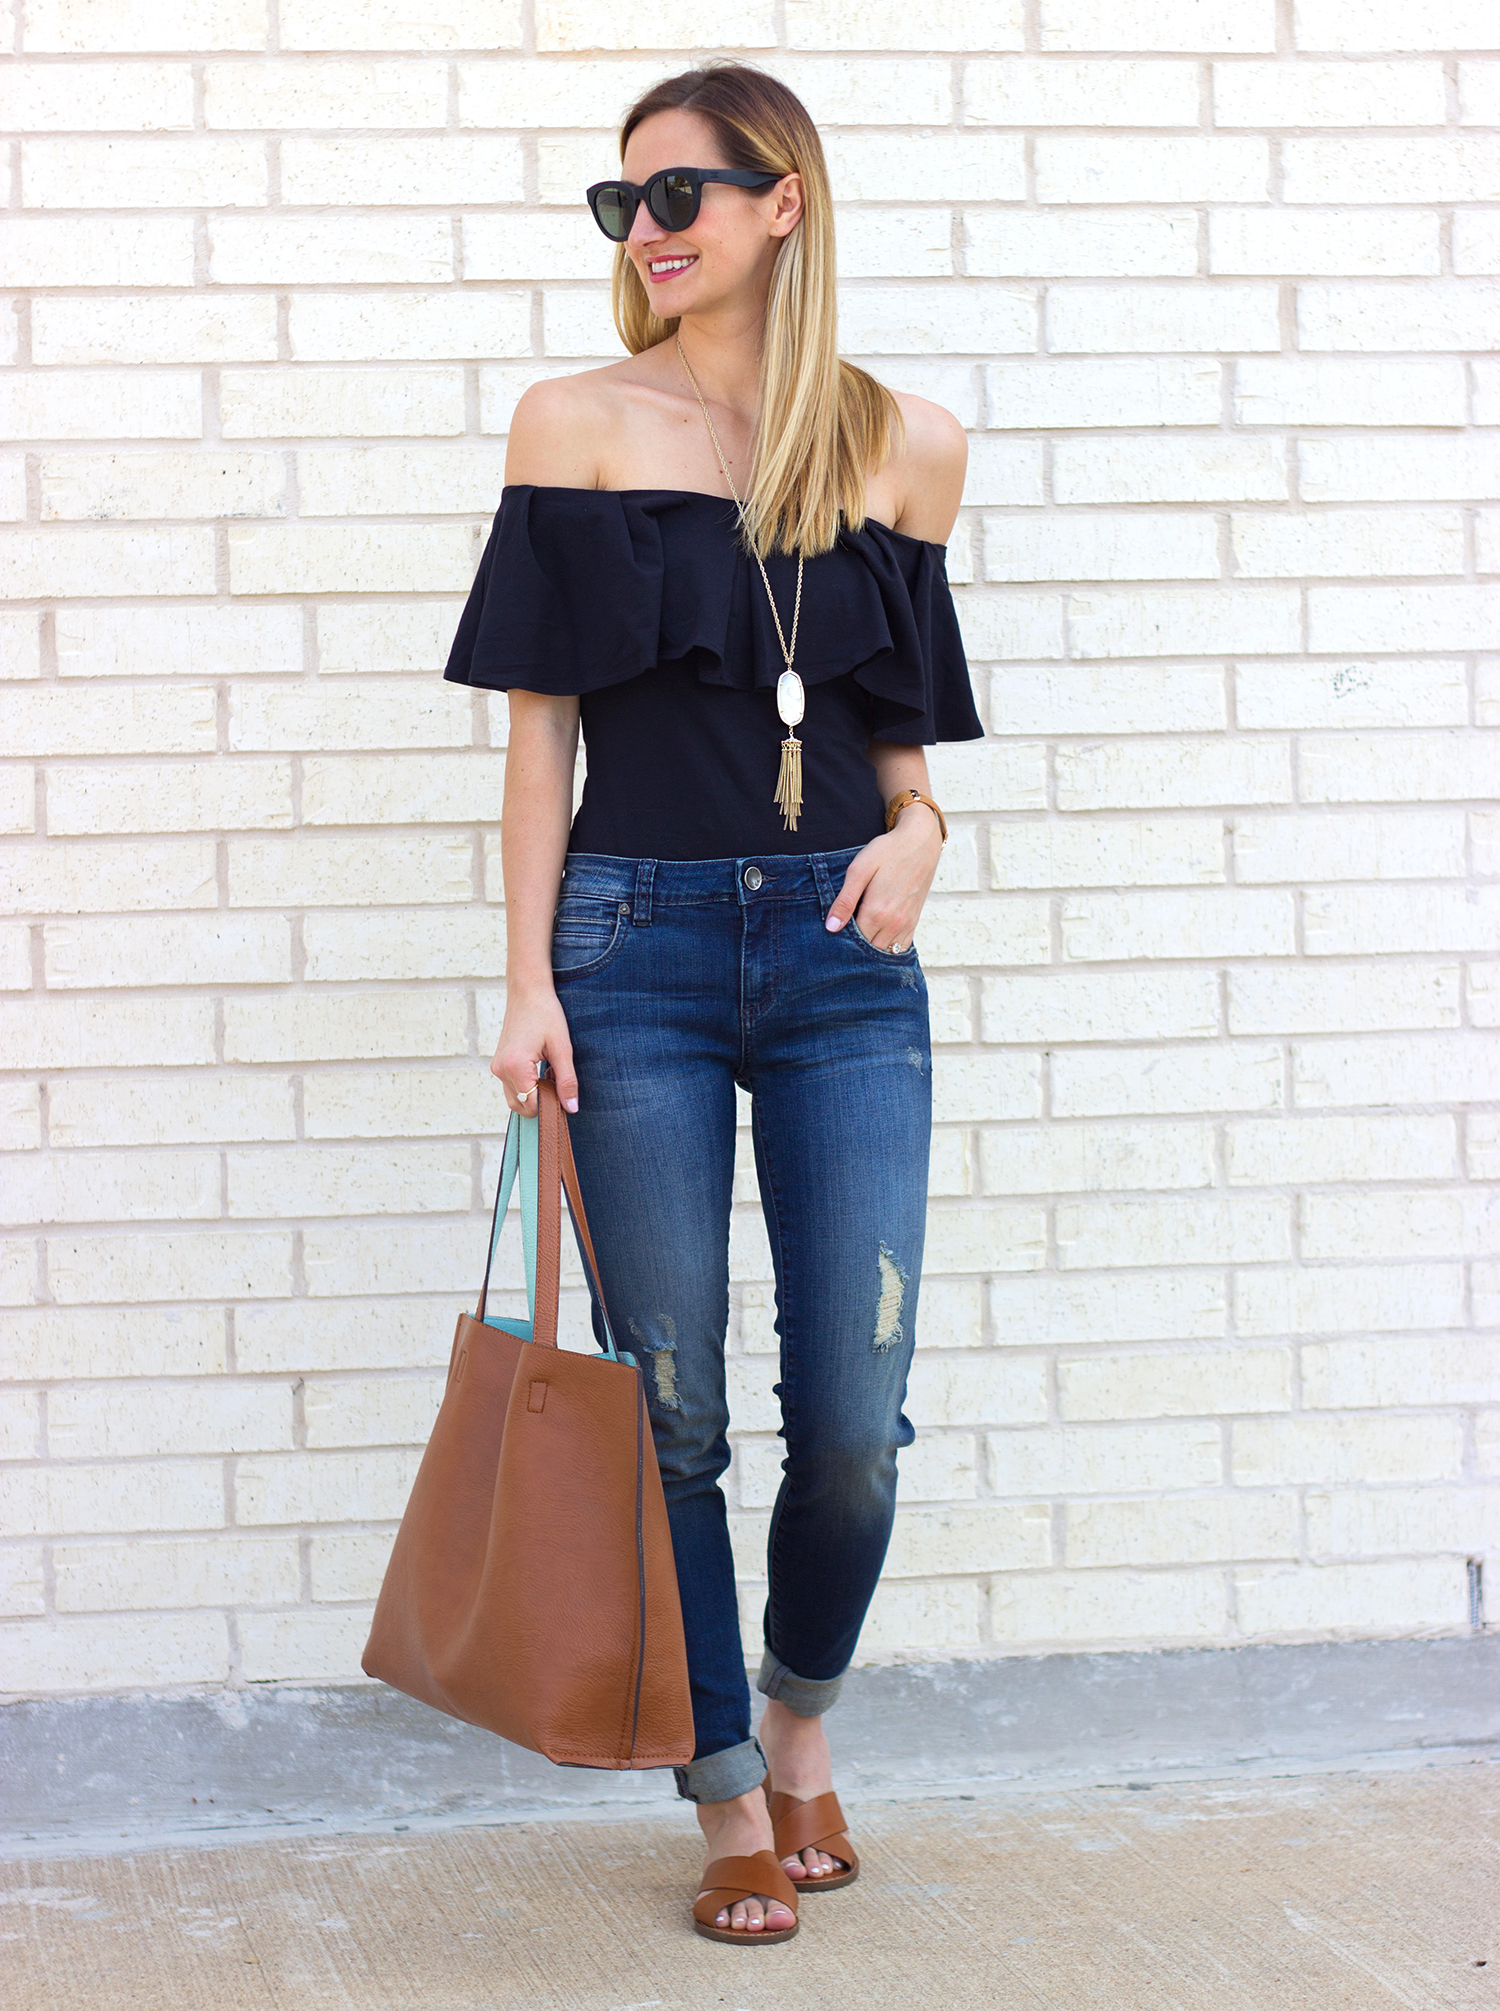 livvyland-blog-olivia-watson-austin-texas-fashion-blogger-boho-kut-from-the-kloth-skinny-jeans-nordstrom-madewell-slip-on-flats-free-people-tula-off-shoulder-top-5